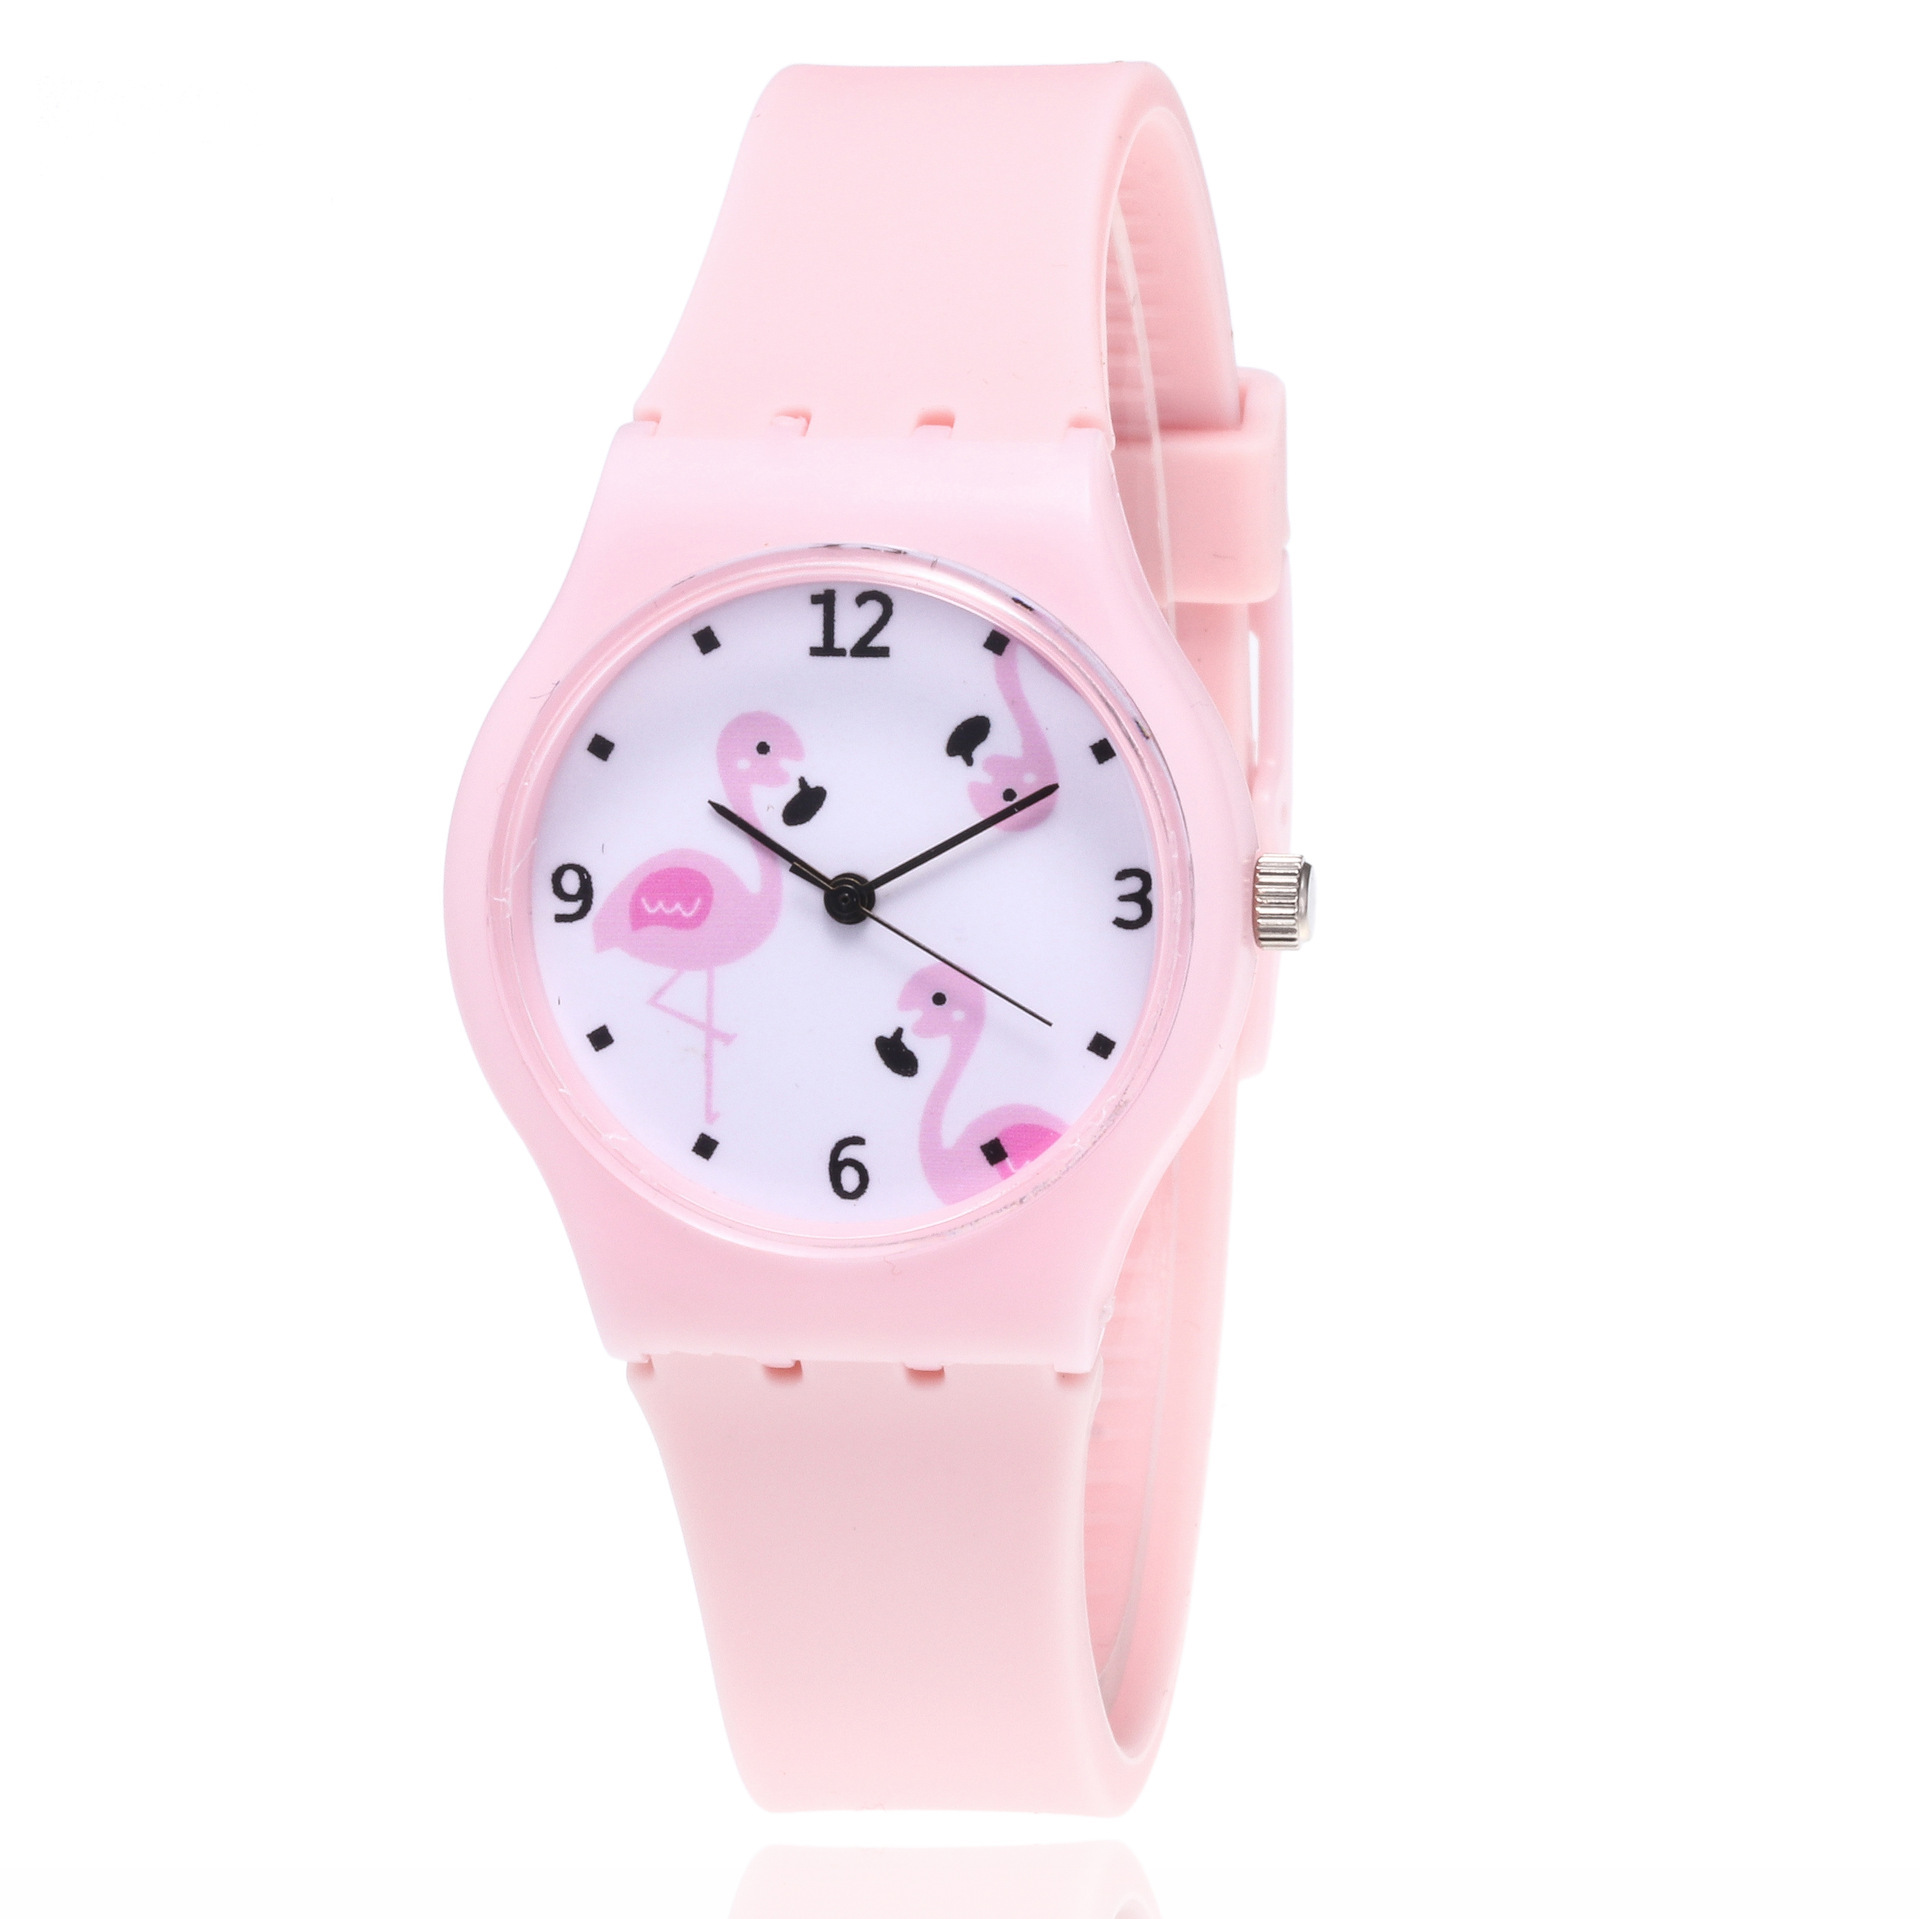 High Quality Fashion Children's Watches Women Goose Pattern Casual Silicone Flamingo Ladies Quartz Student Watch Kids Girls Gift